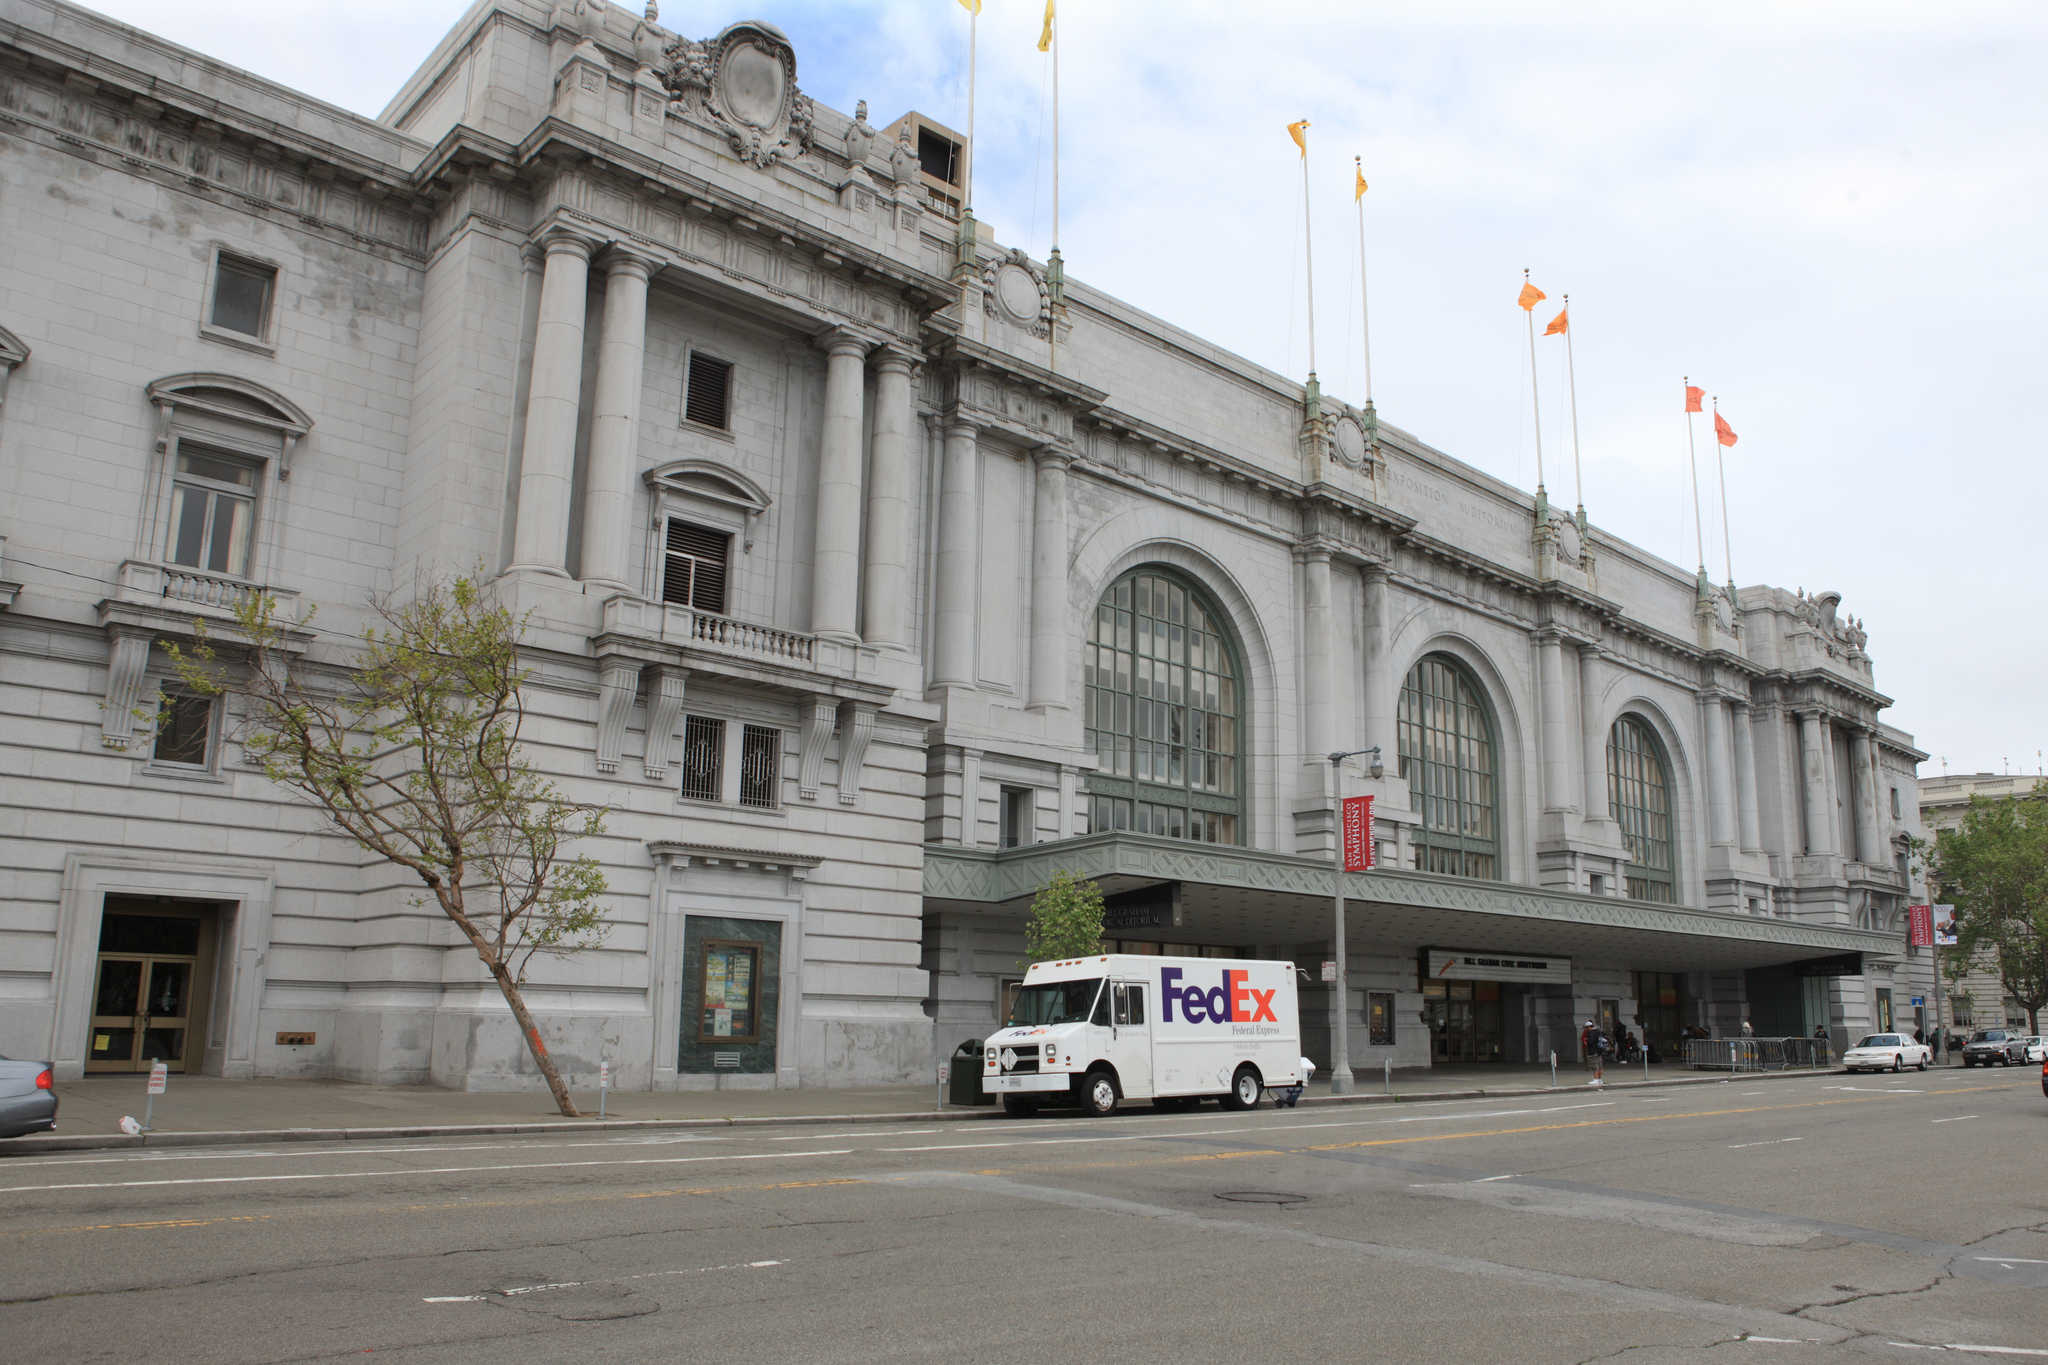 Here's where Apple's next keynote will be held.